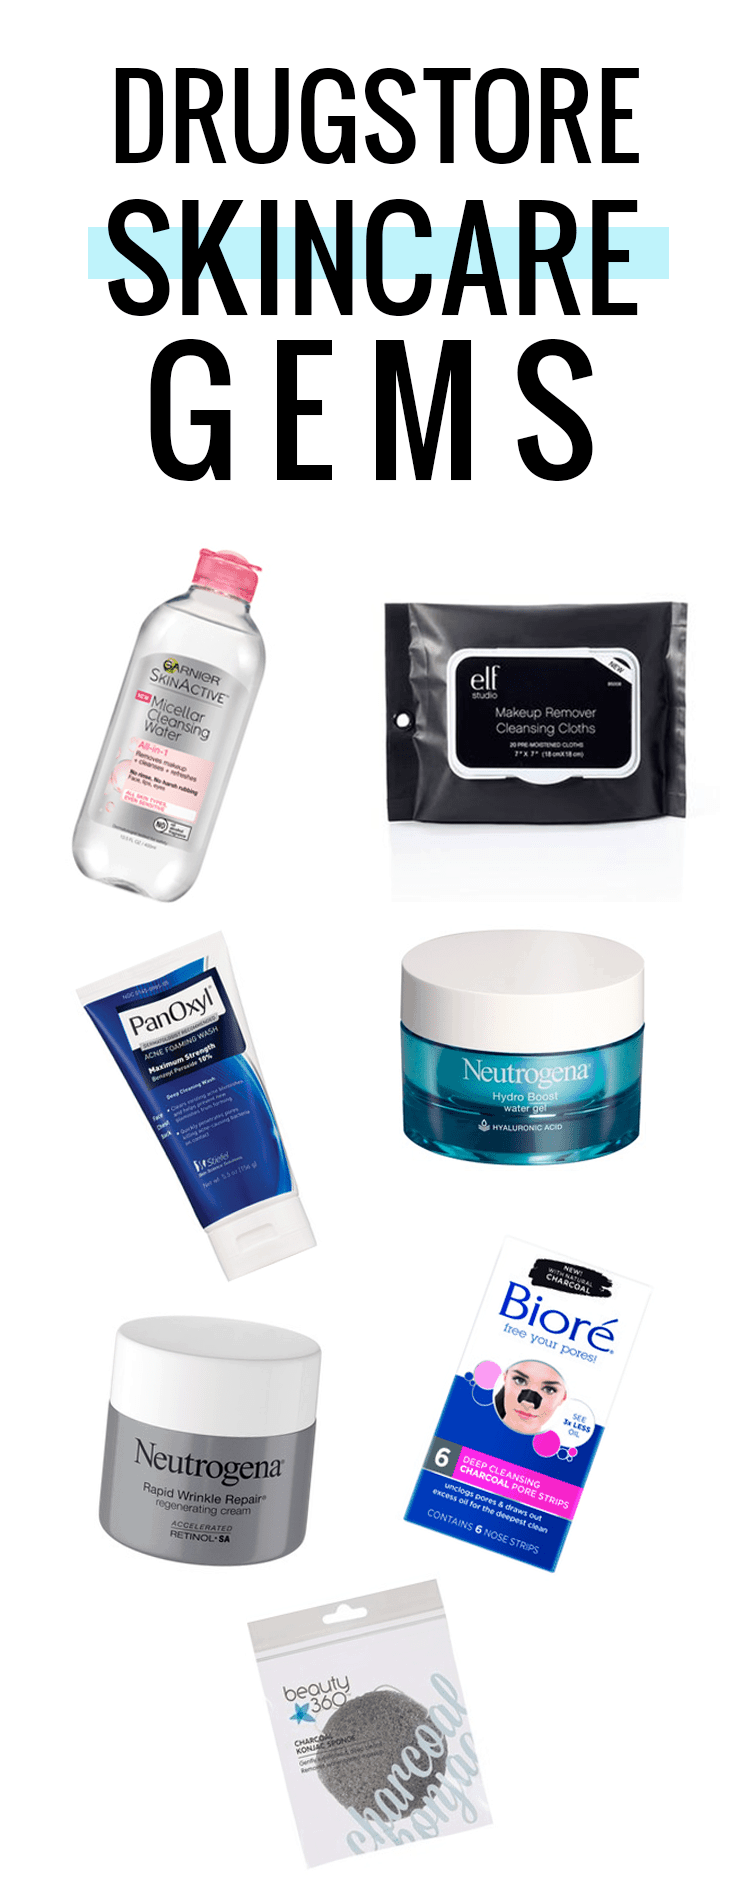 Some of the best drugstore skincare products!